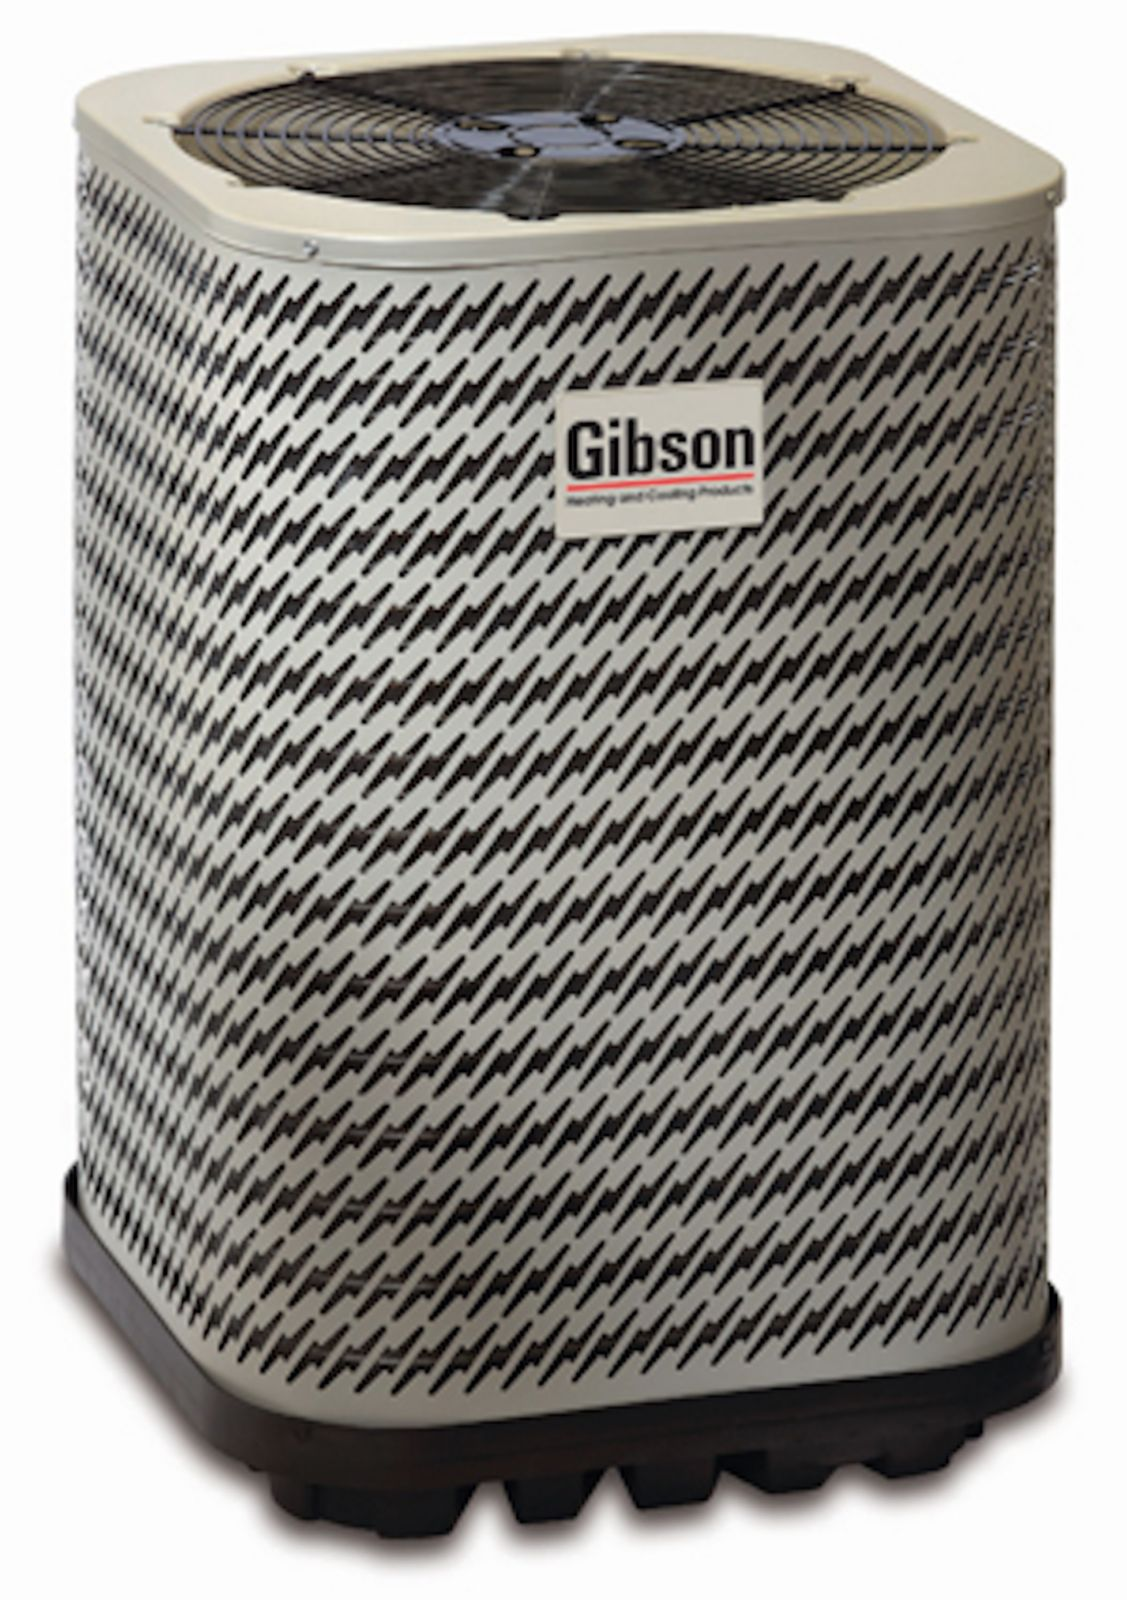 gibson air conditioner serial number search